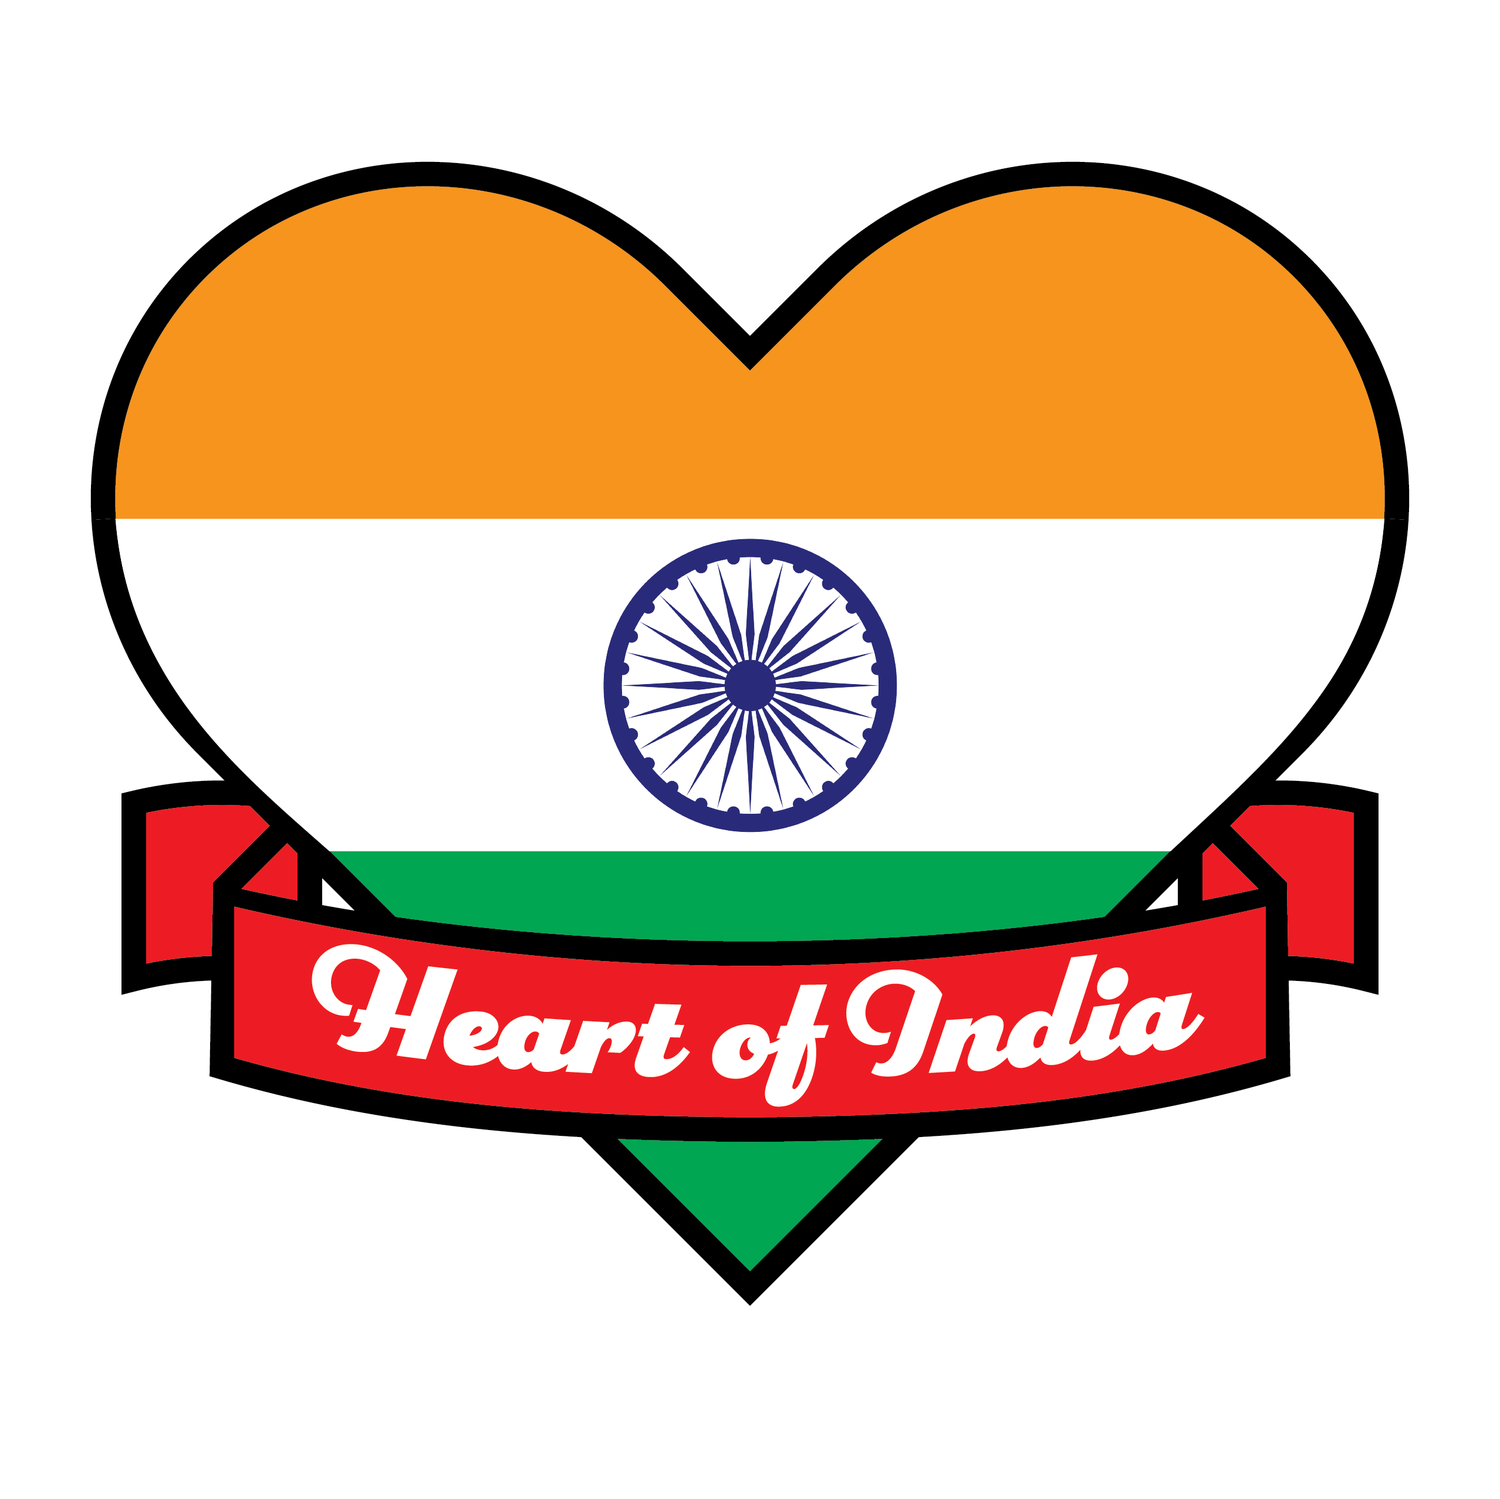 Heart of India